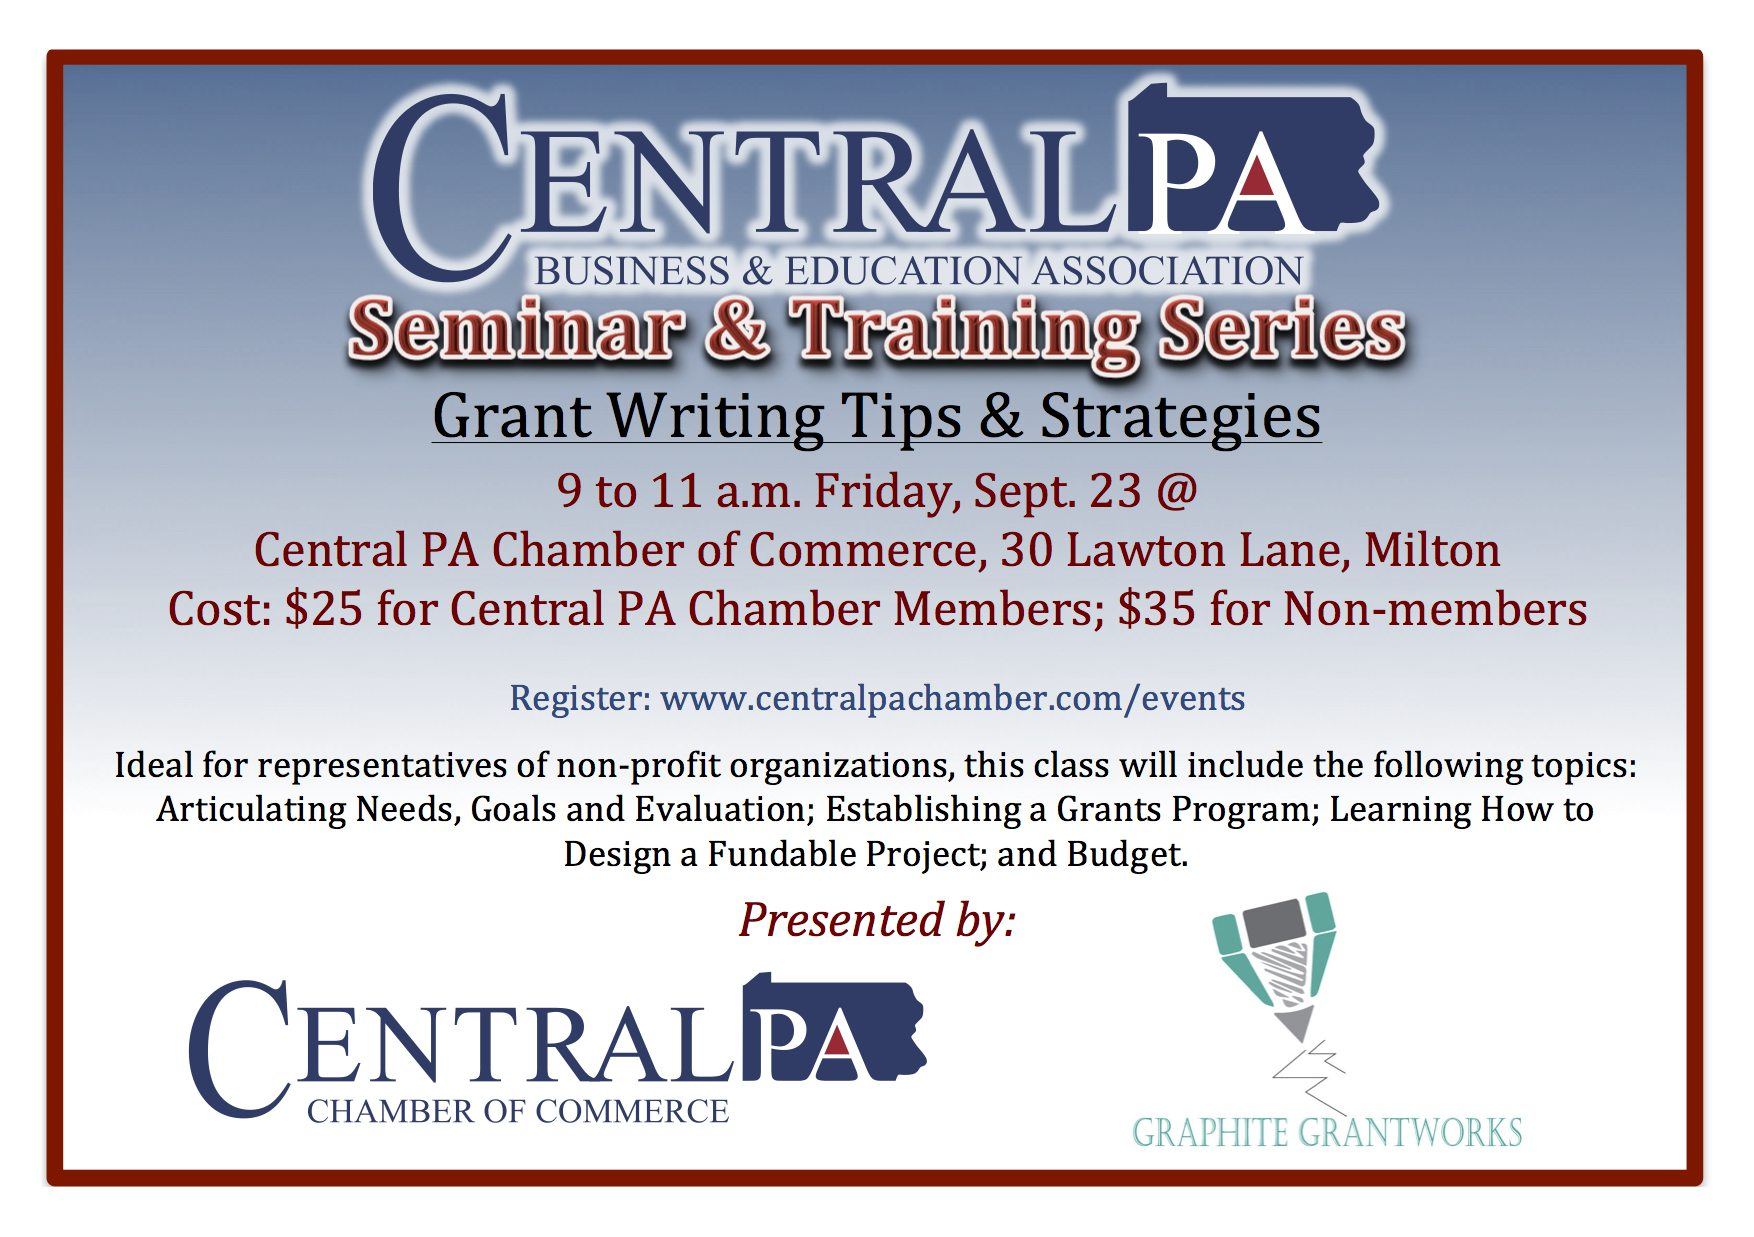 *POSTPONED* Grant Writing Tips & Strategies - Central PA Chamber of Commerce